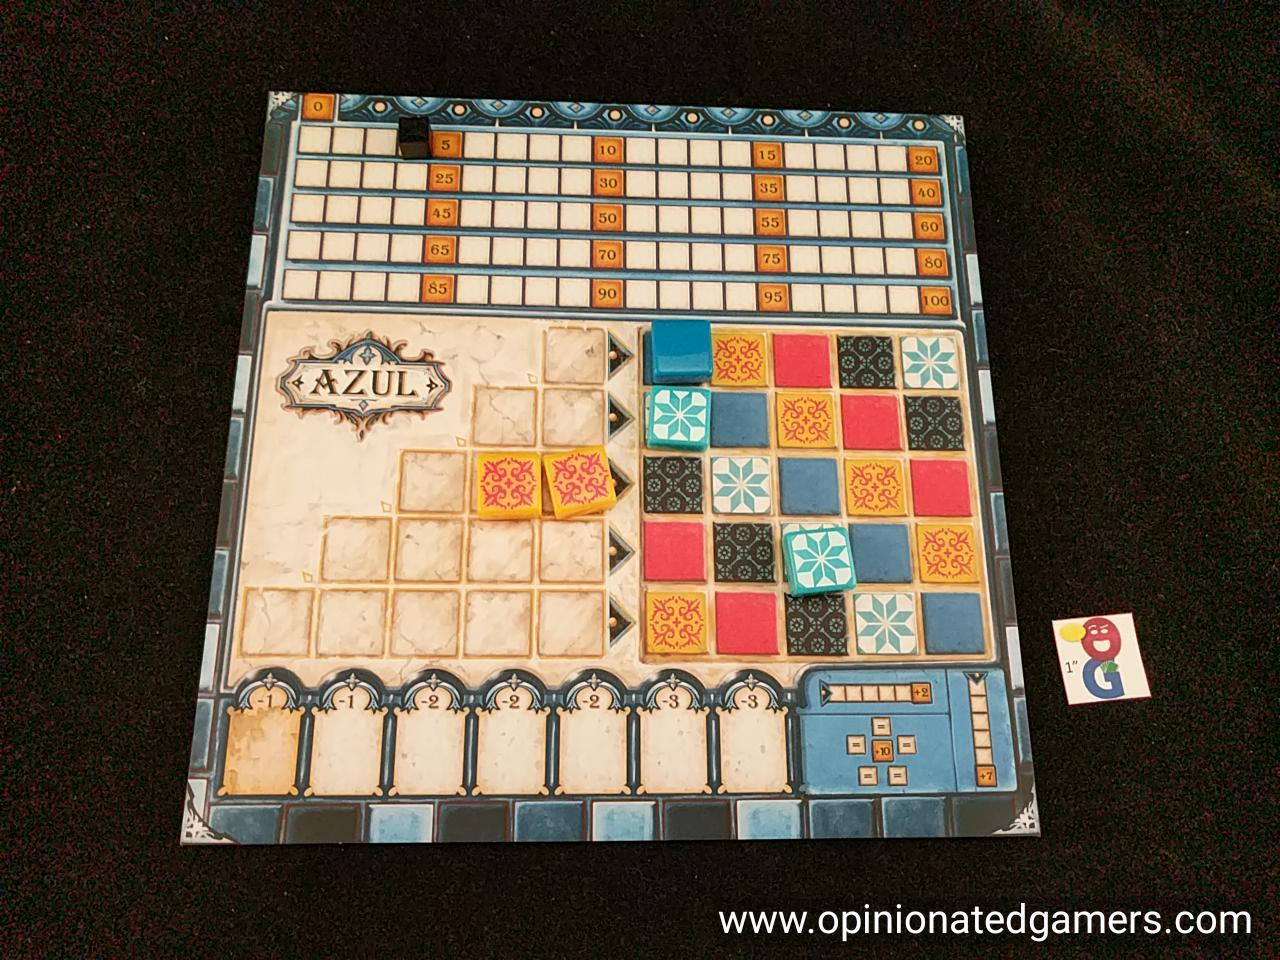 Opinionated Gamers - Dale Yu: Review of Azul image